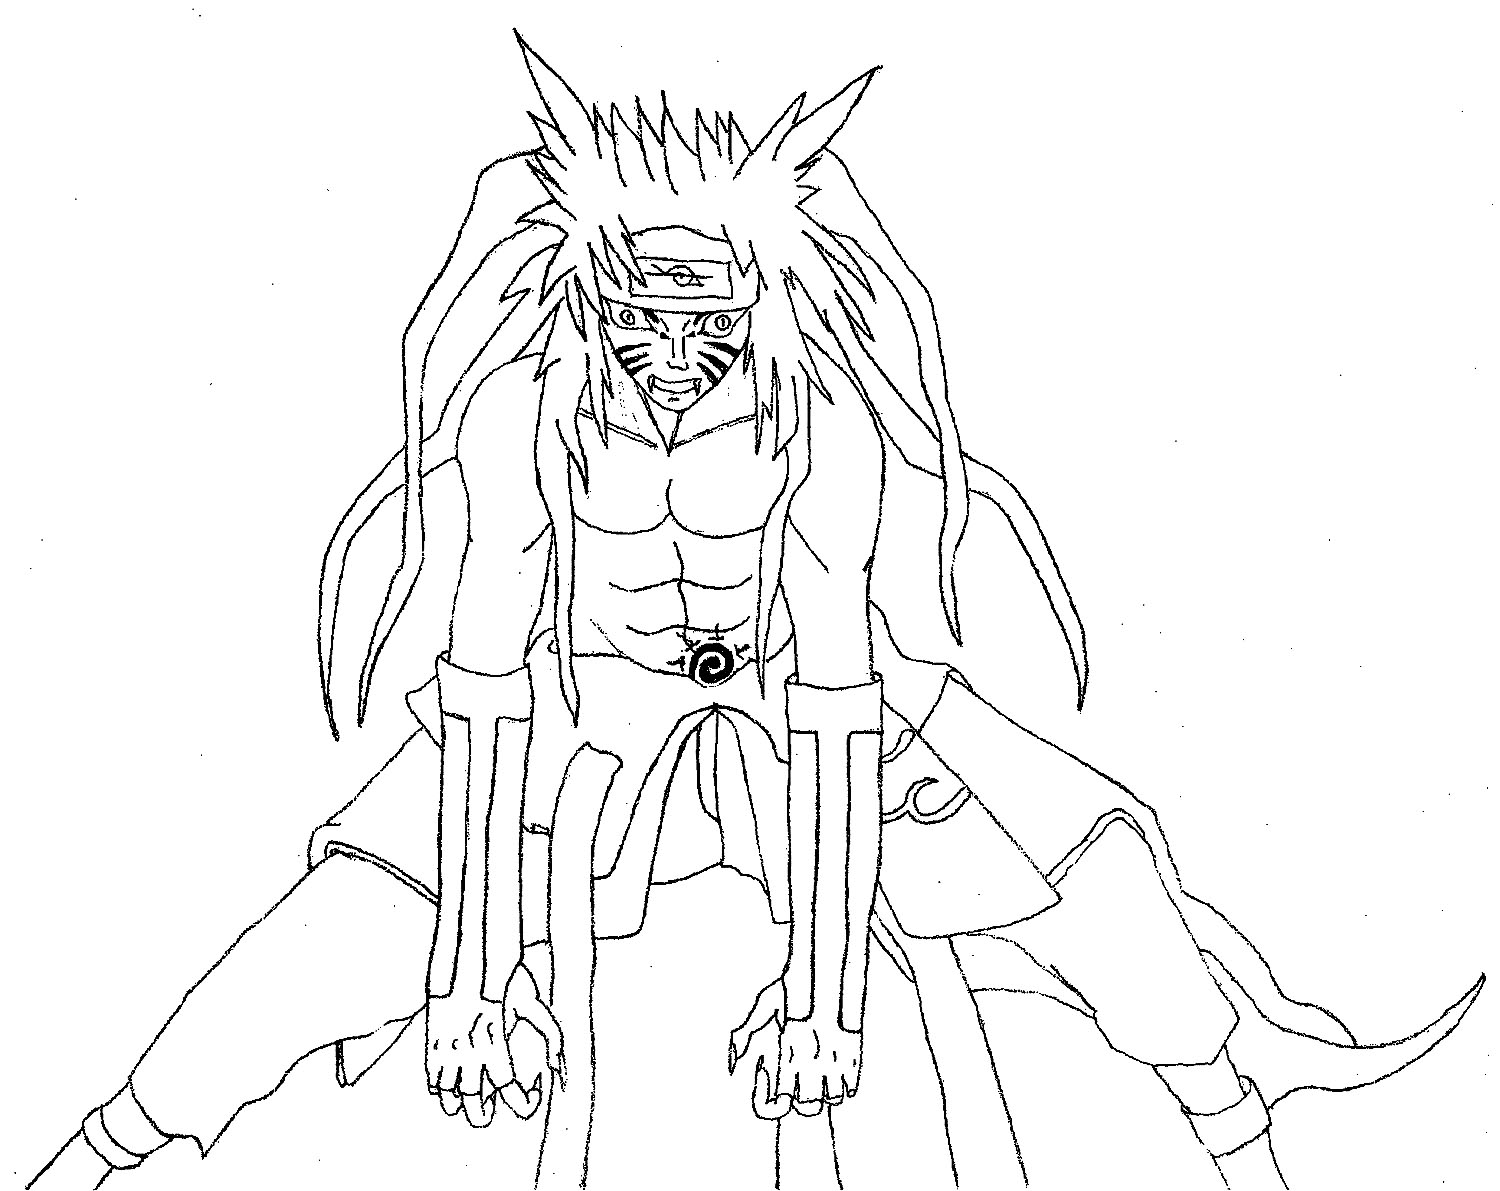 Best Of Chibi Naruto Coloring Pages | AnyOneForAnyaTeam | 1191x1500